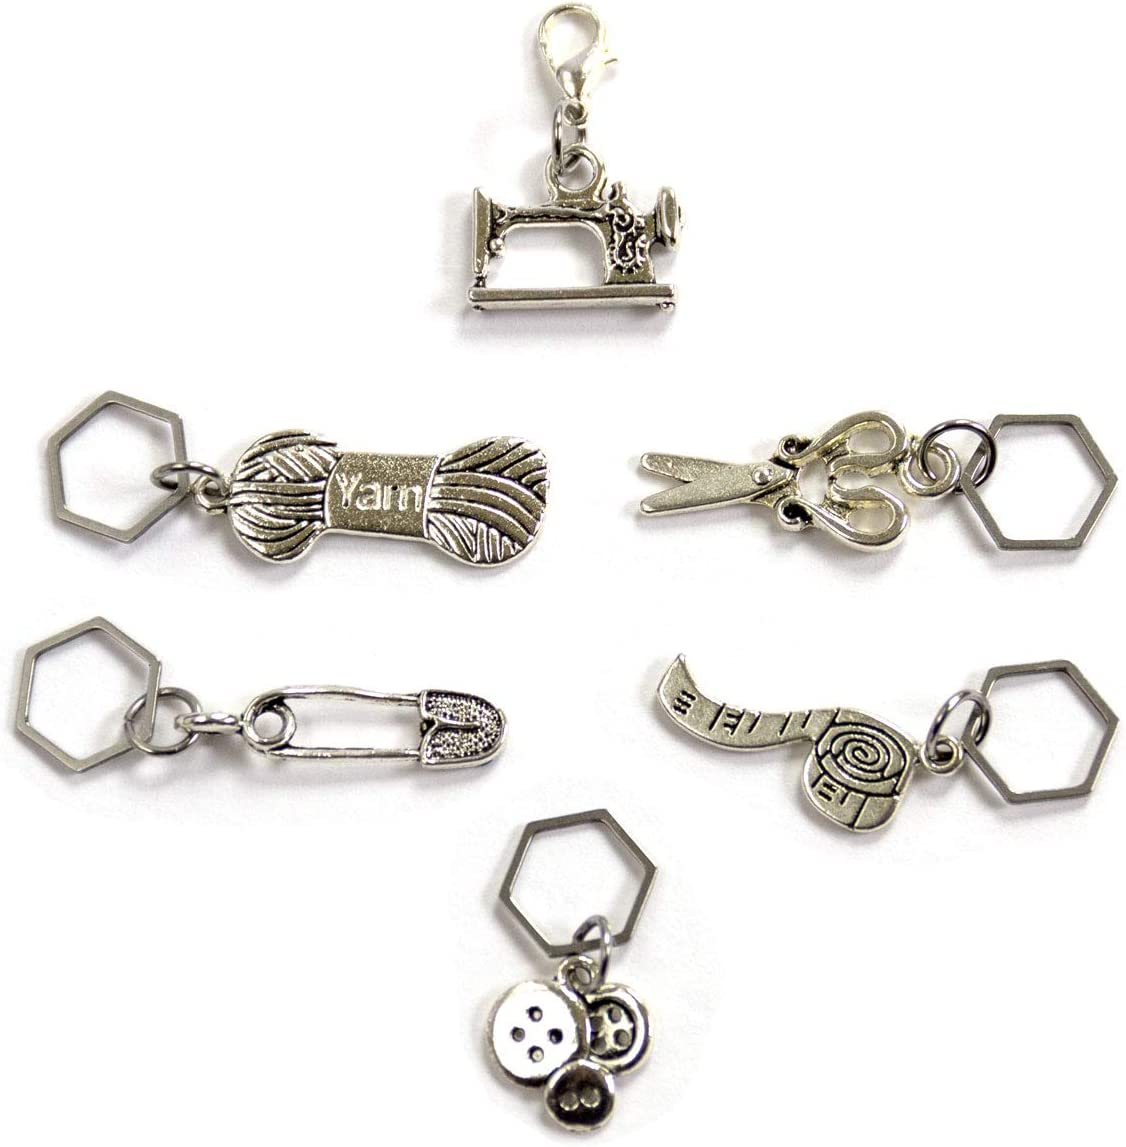 Set 4 Stitch Markers Crochet Knitting Clip Yarn Tape Measure Safety Pin Charms